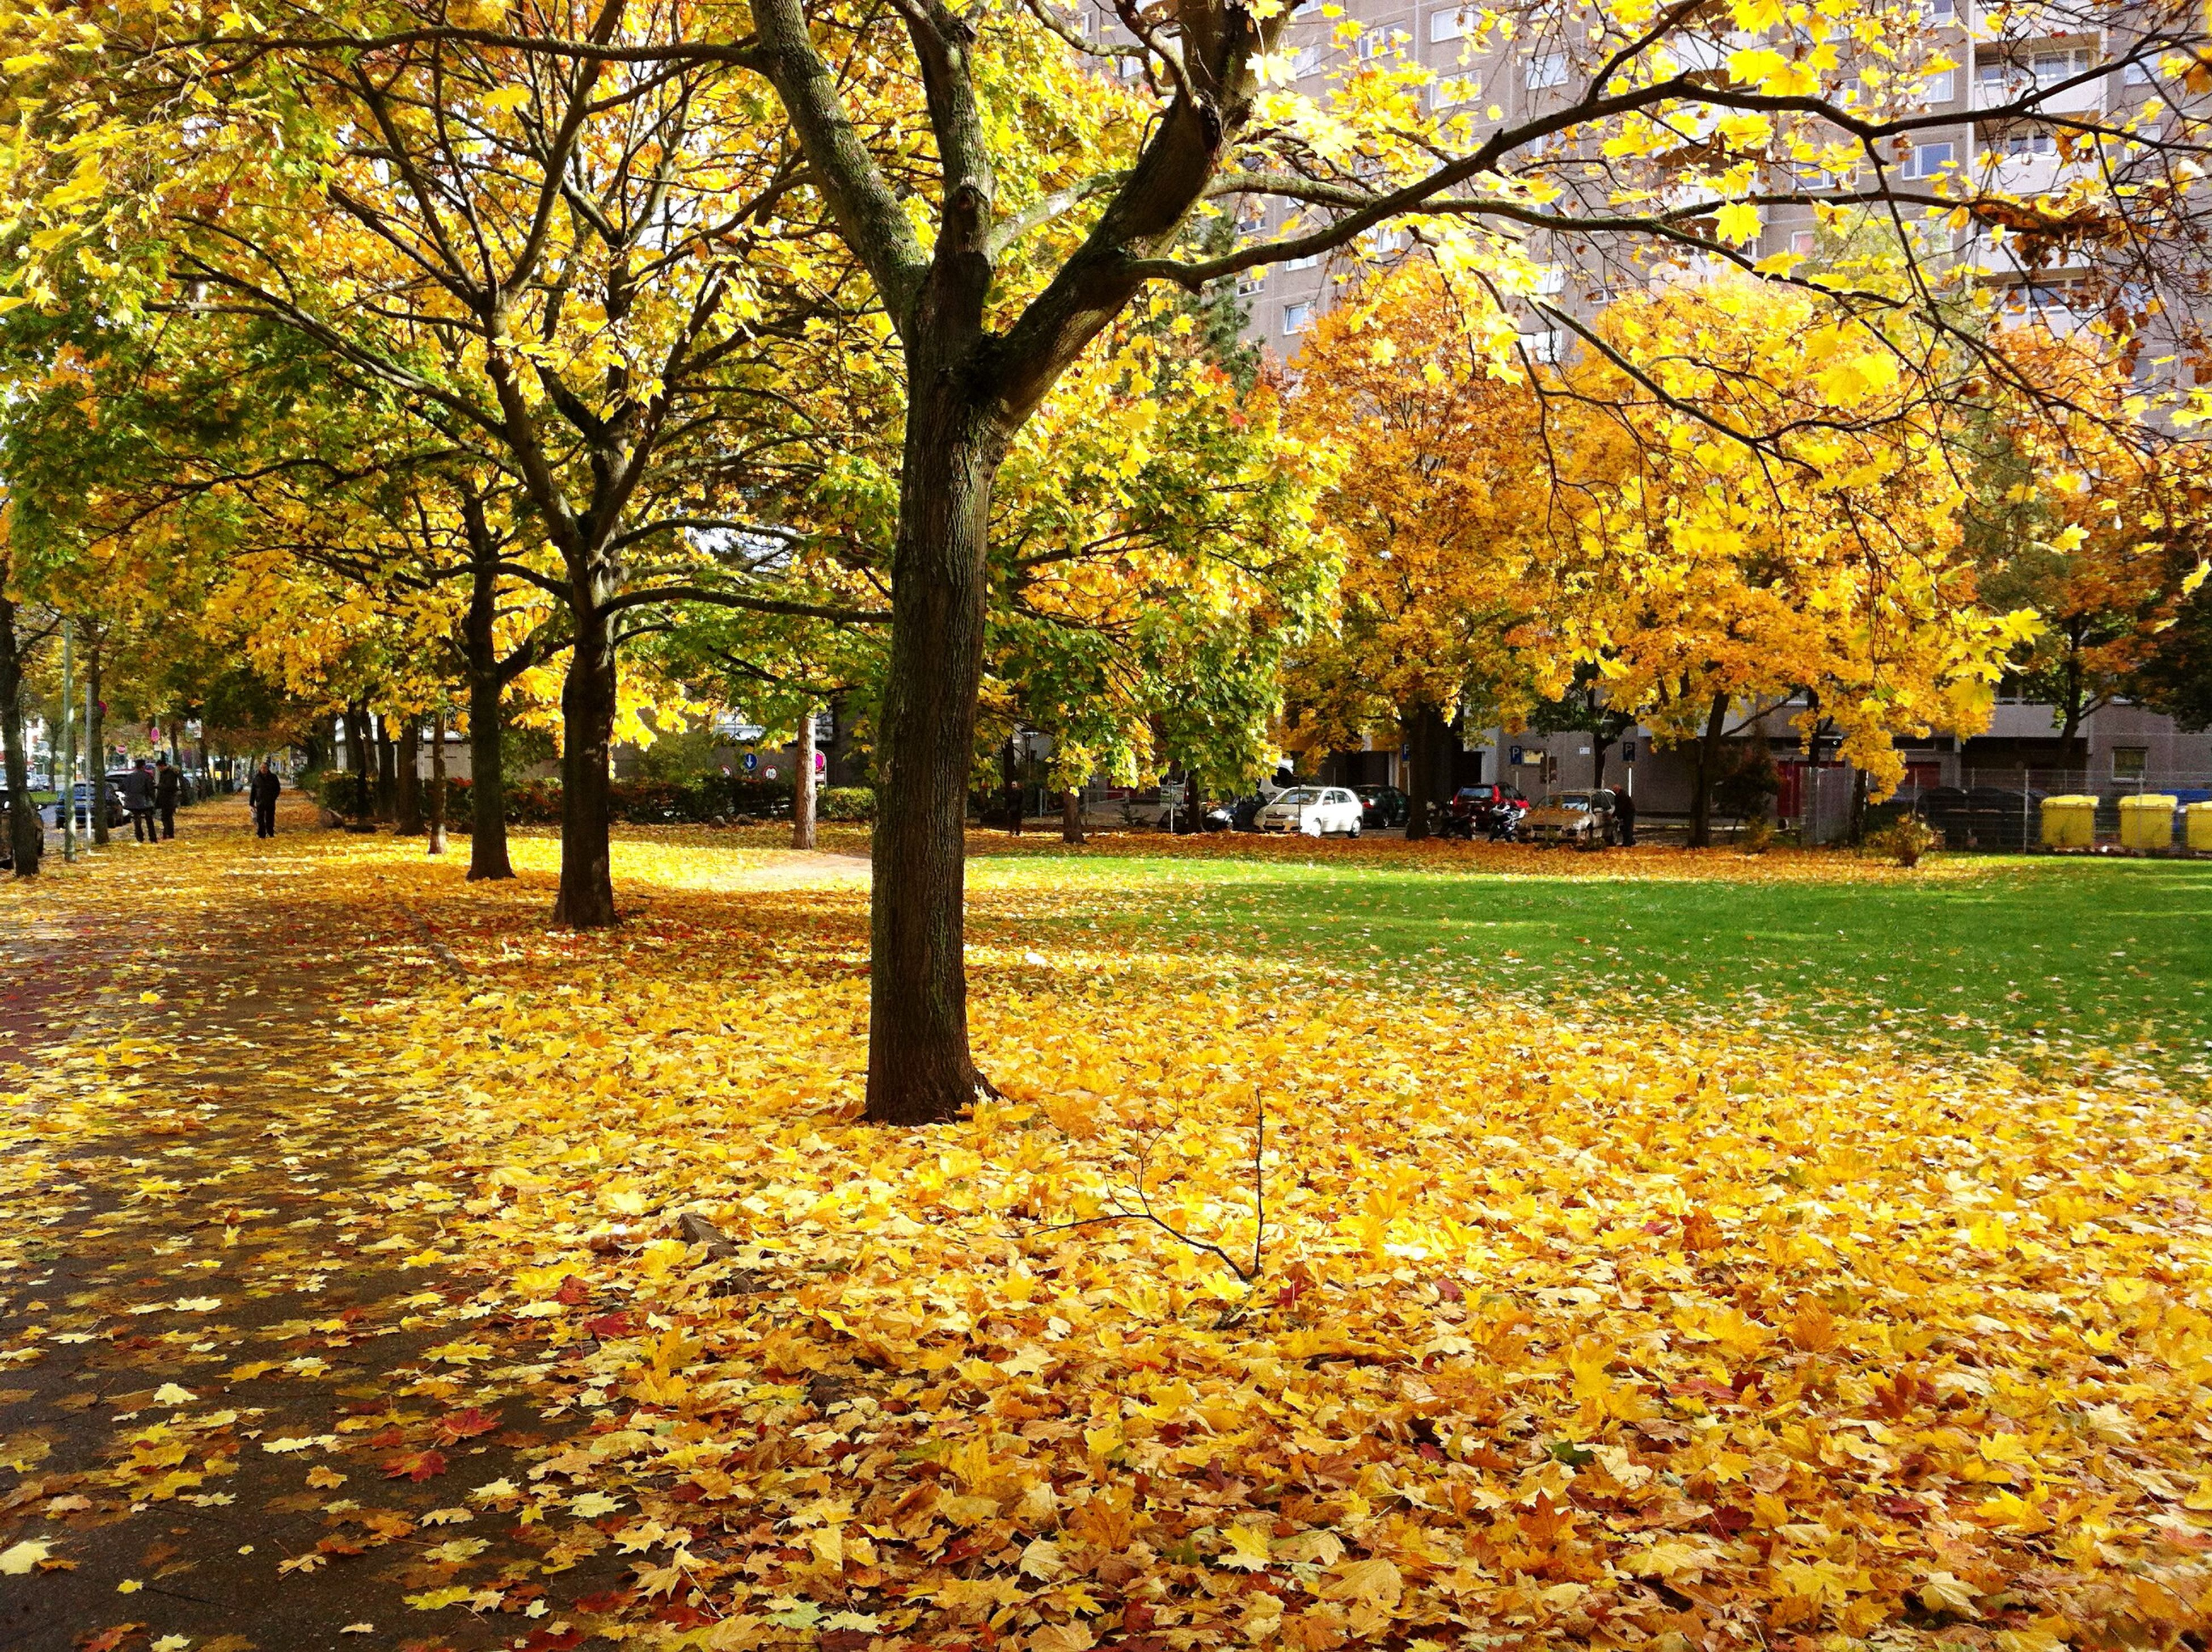 autumn, change, tree, season, leaf, yellow, beauty in nature, park - man made space, fallen, nature, growth, tranquility, park, tranquil scene, day, orange color, leaves, abundance, scenics, outdoors, falling, tree trunk, fall, no people, fragility, grass, blossom, landscape